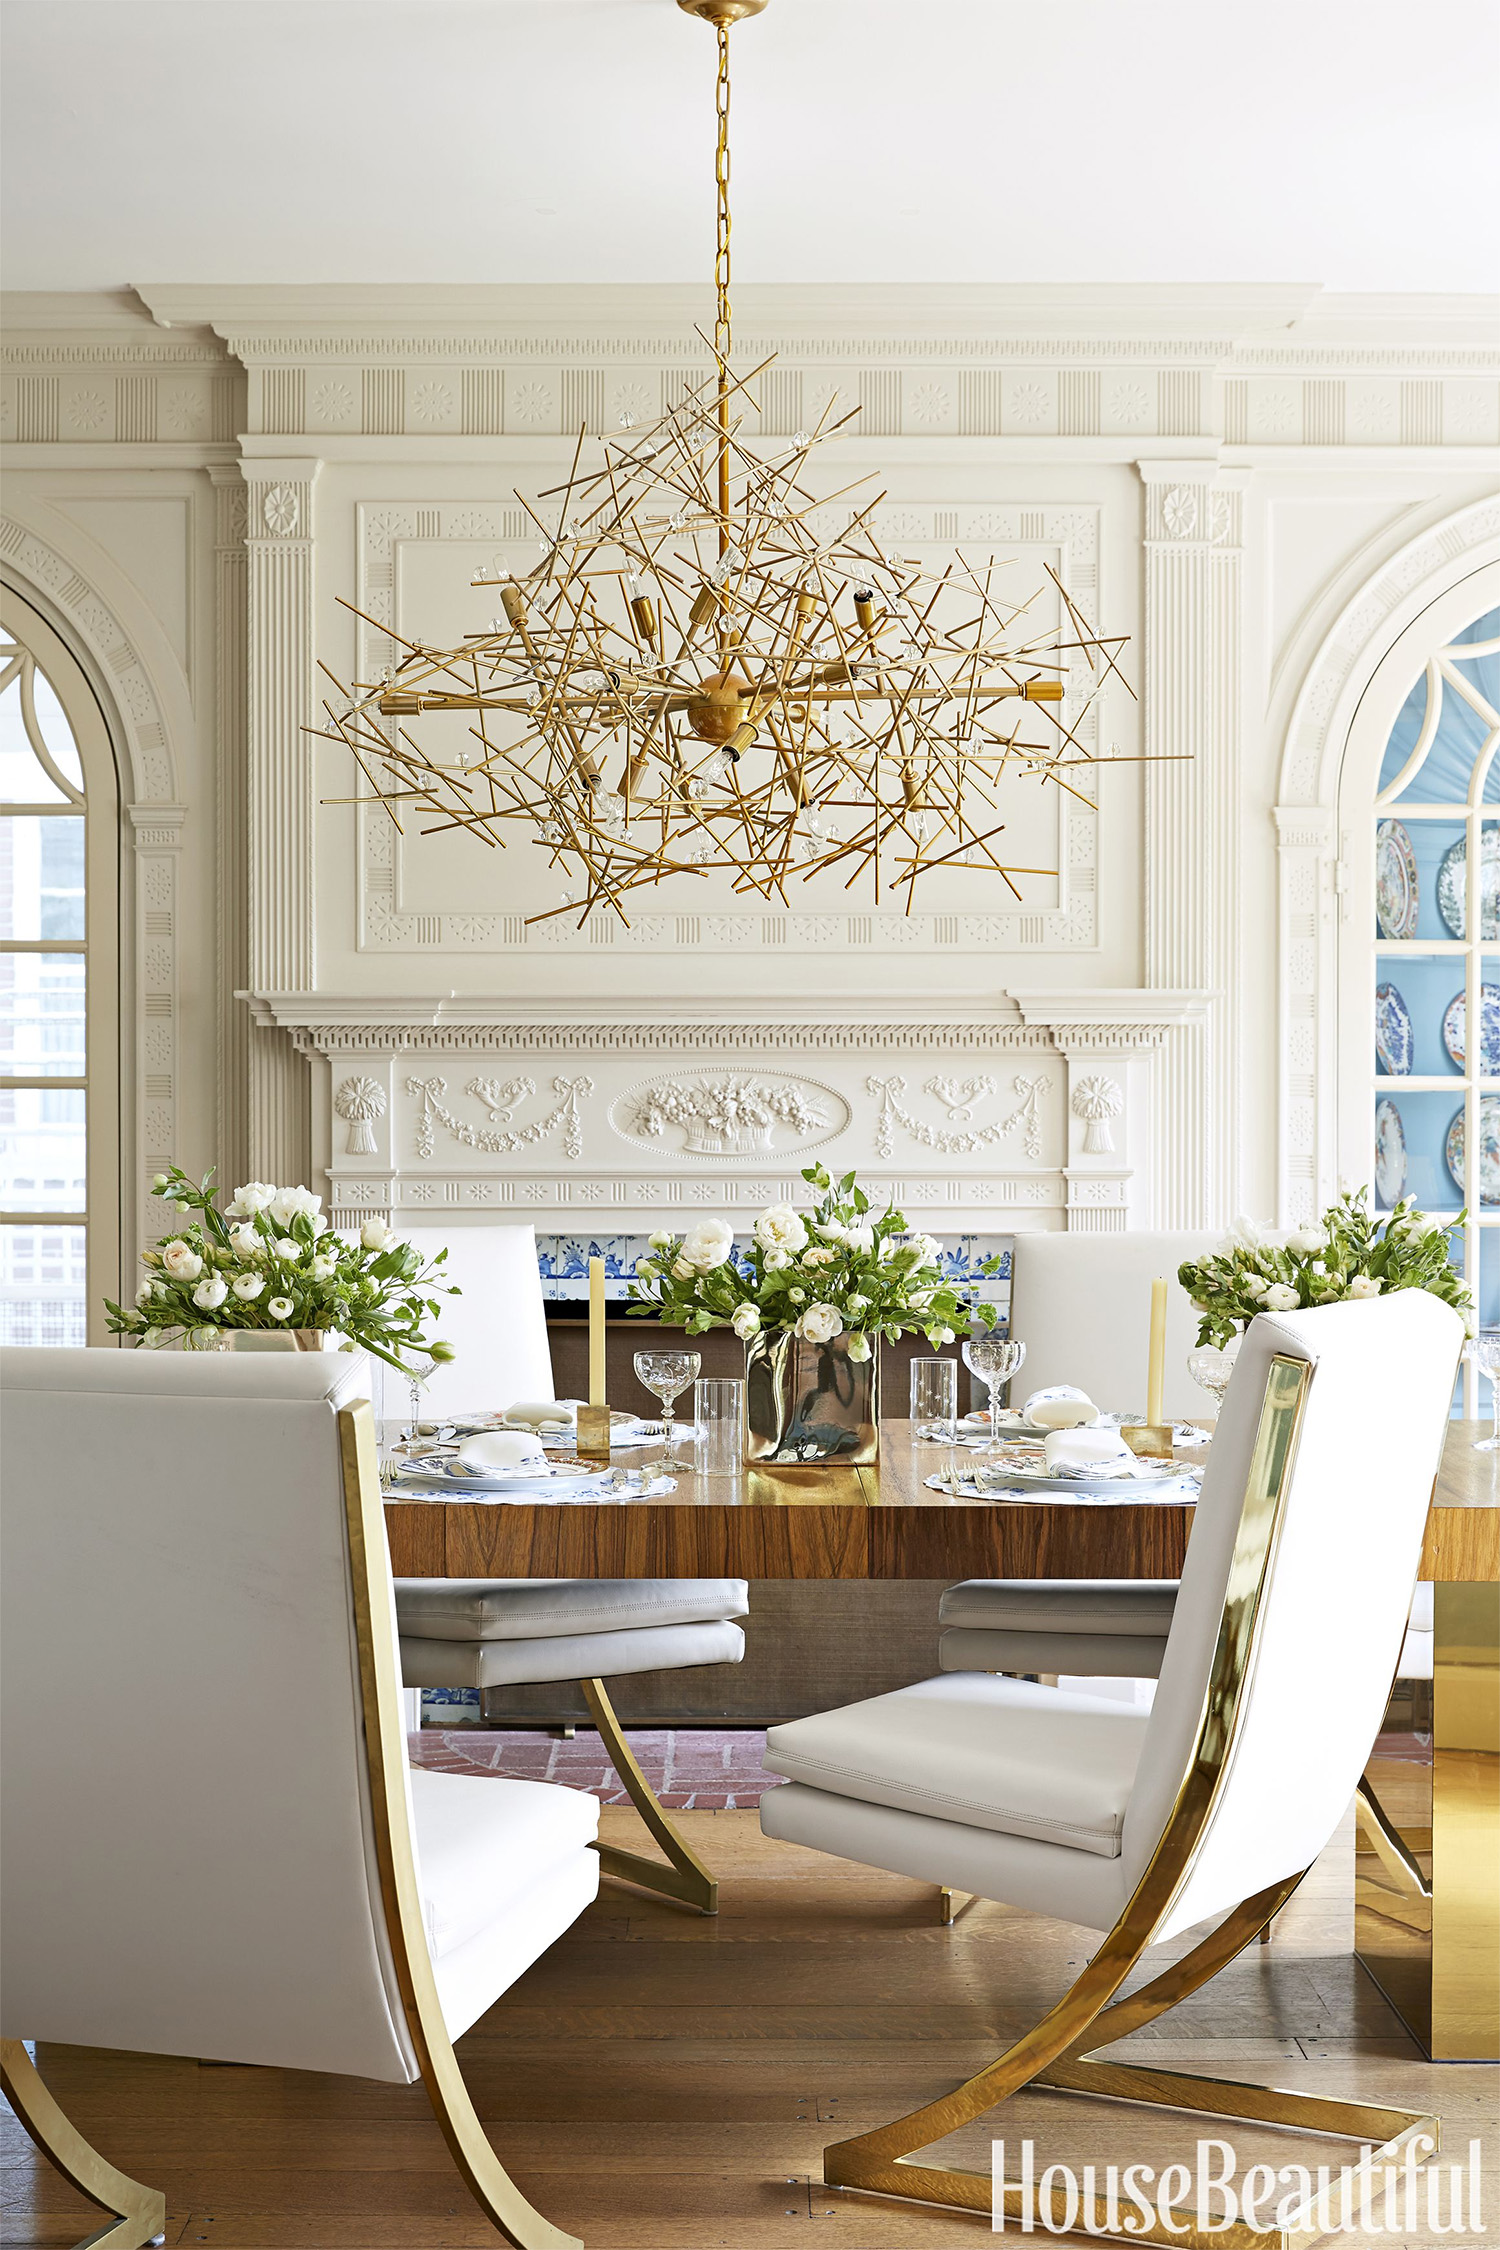 This Janet Gridley designed dining room creates interesting juxtaposition with the home's fireplace and mouldings combined with the chandelier, table, and chairs.